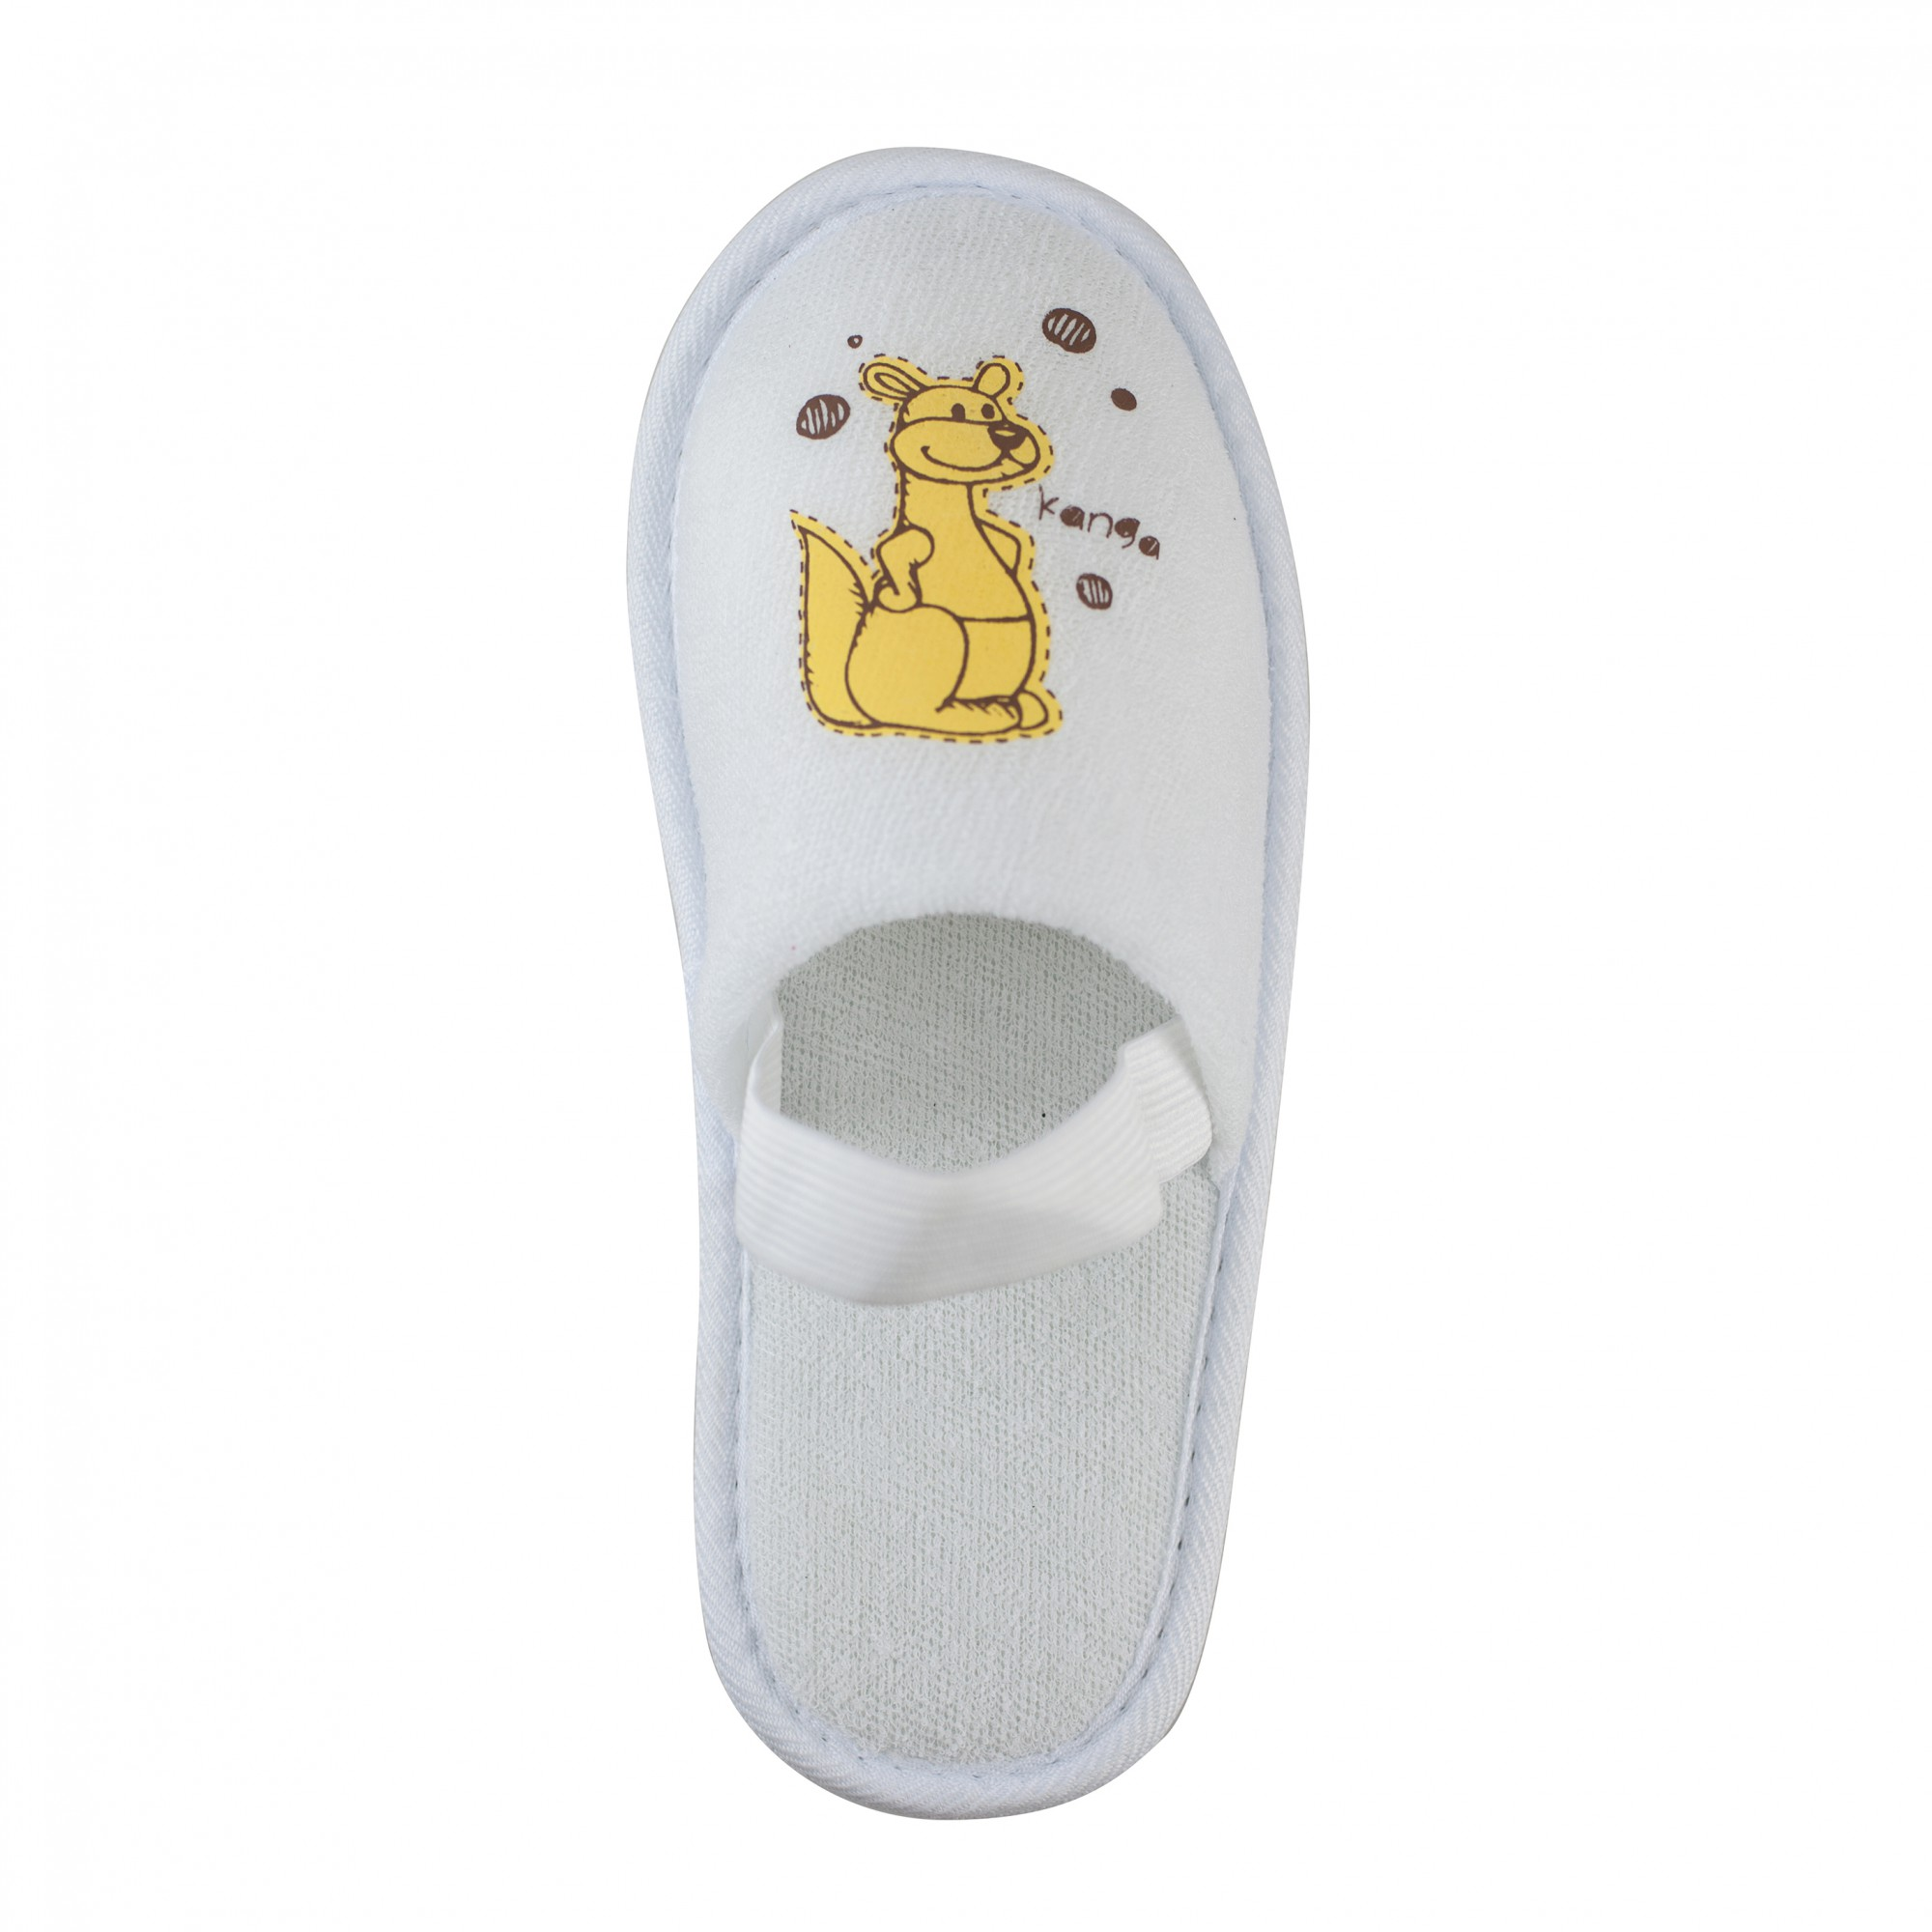 Baby Hotel Slippers Baby Pair Close Slippers 94 Box 100 Pair